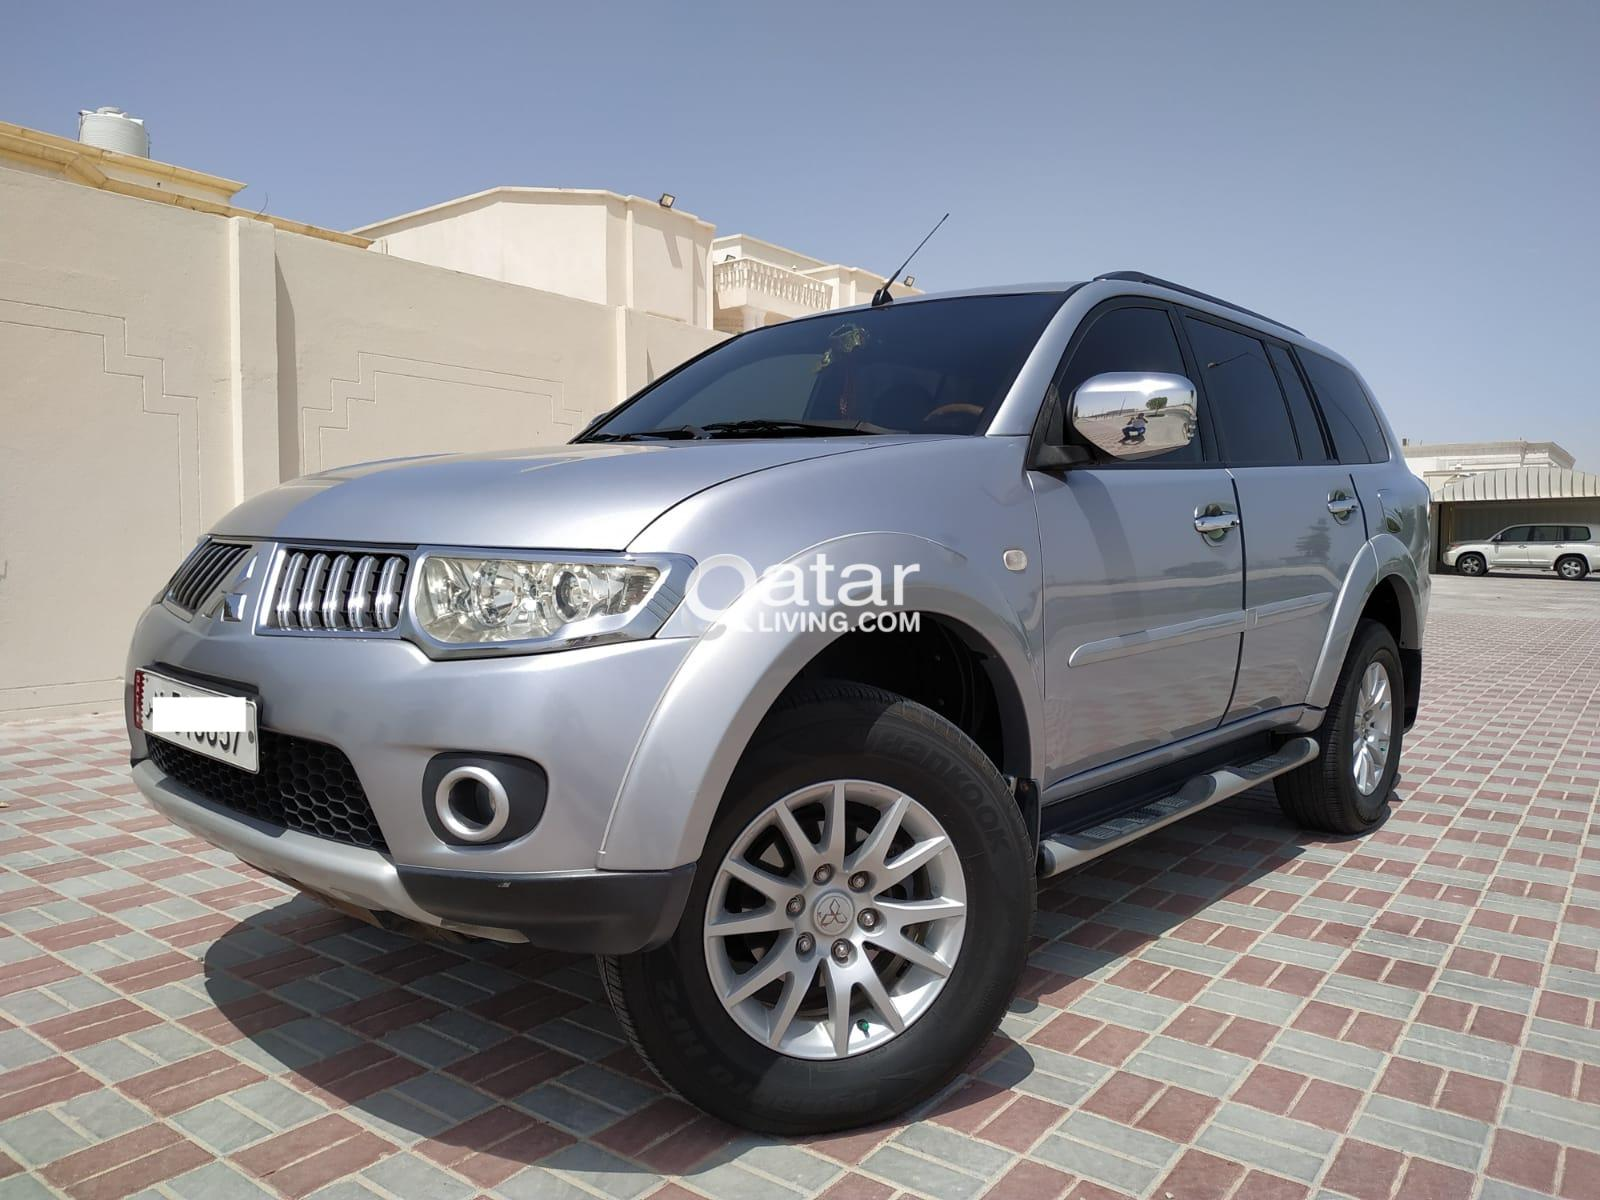 PERFECT 4 WHEEL DRIVE UP FOR SALE